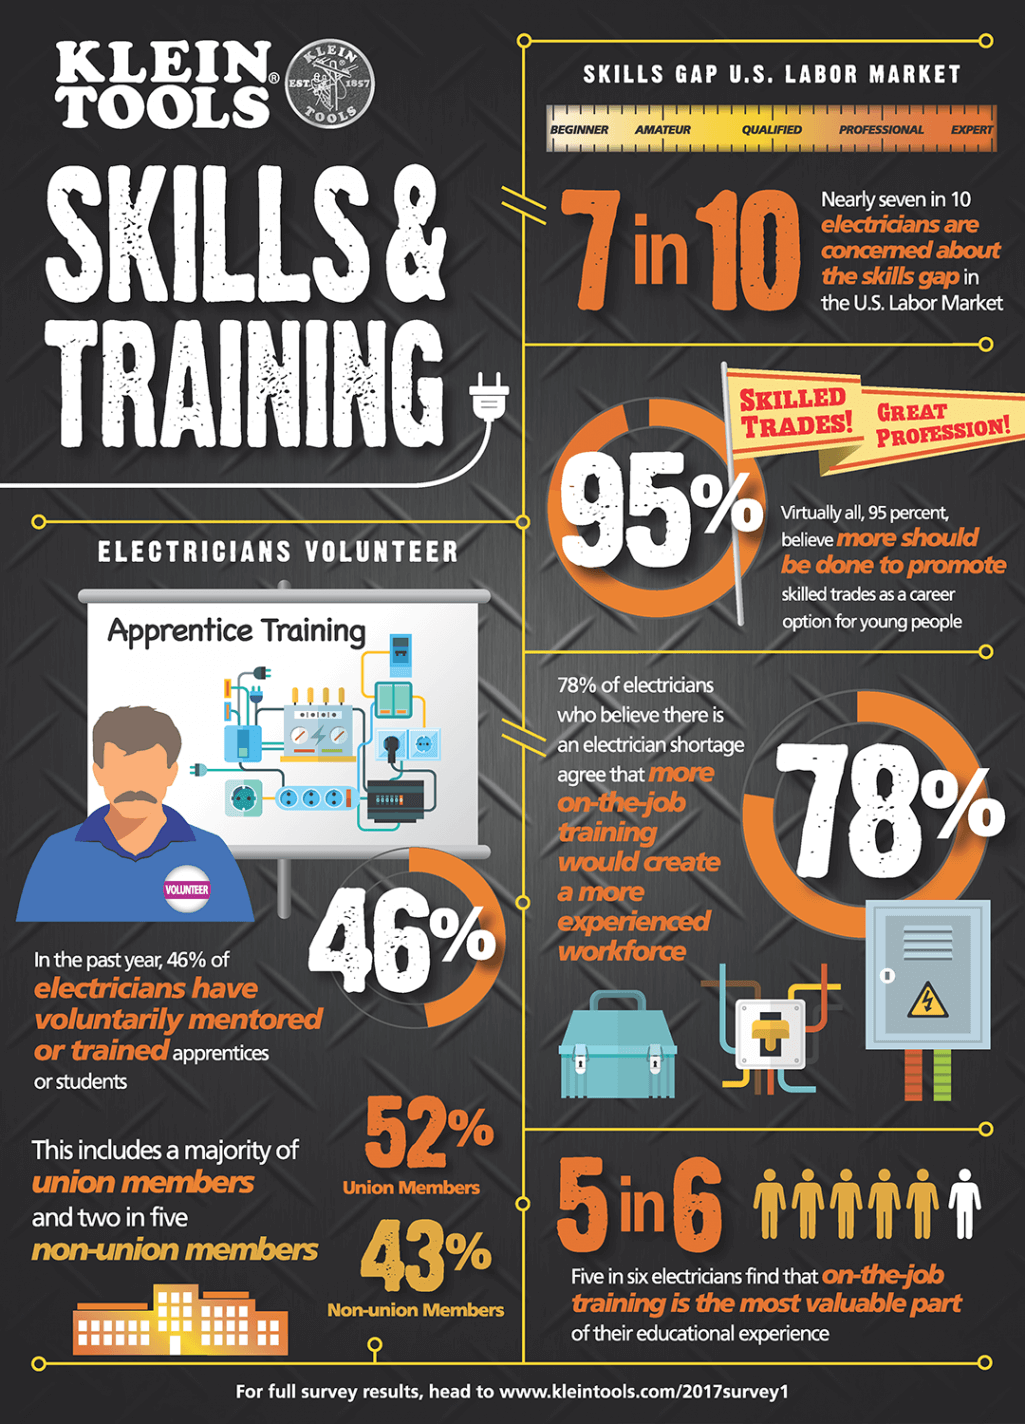 Skills & training info graphic for electricians